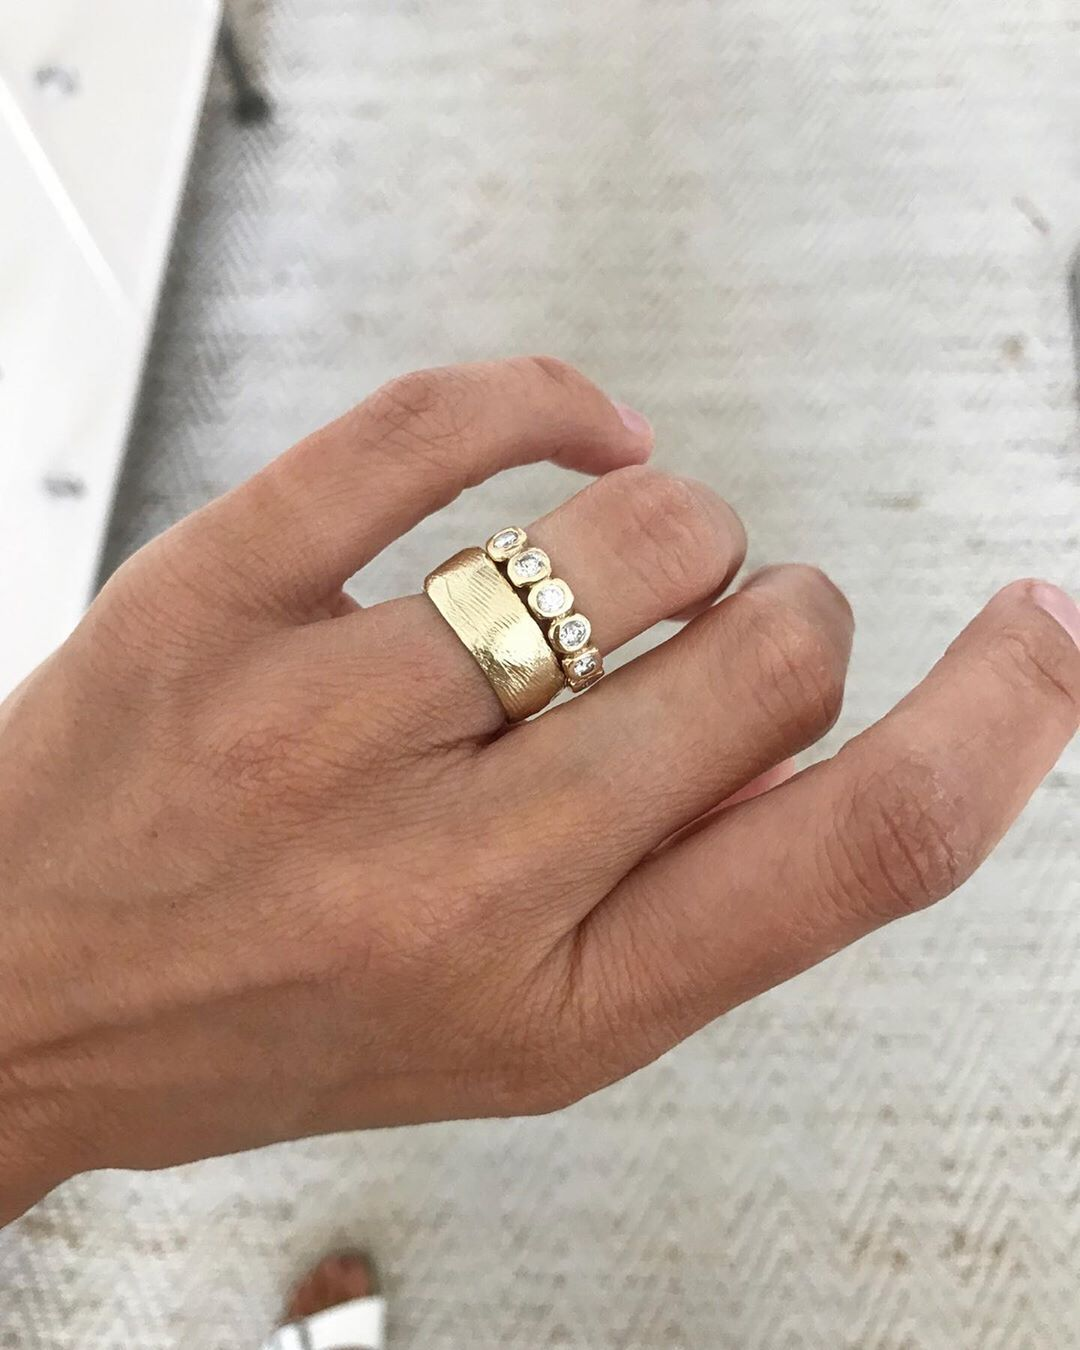 Jane Pope Jewelry On Instagram Love Seeing The Cigar Band With These Three Diamond Rings Gold Band Engagement Rings Ladies Diamond Rings Three Diamond Ring